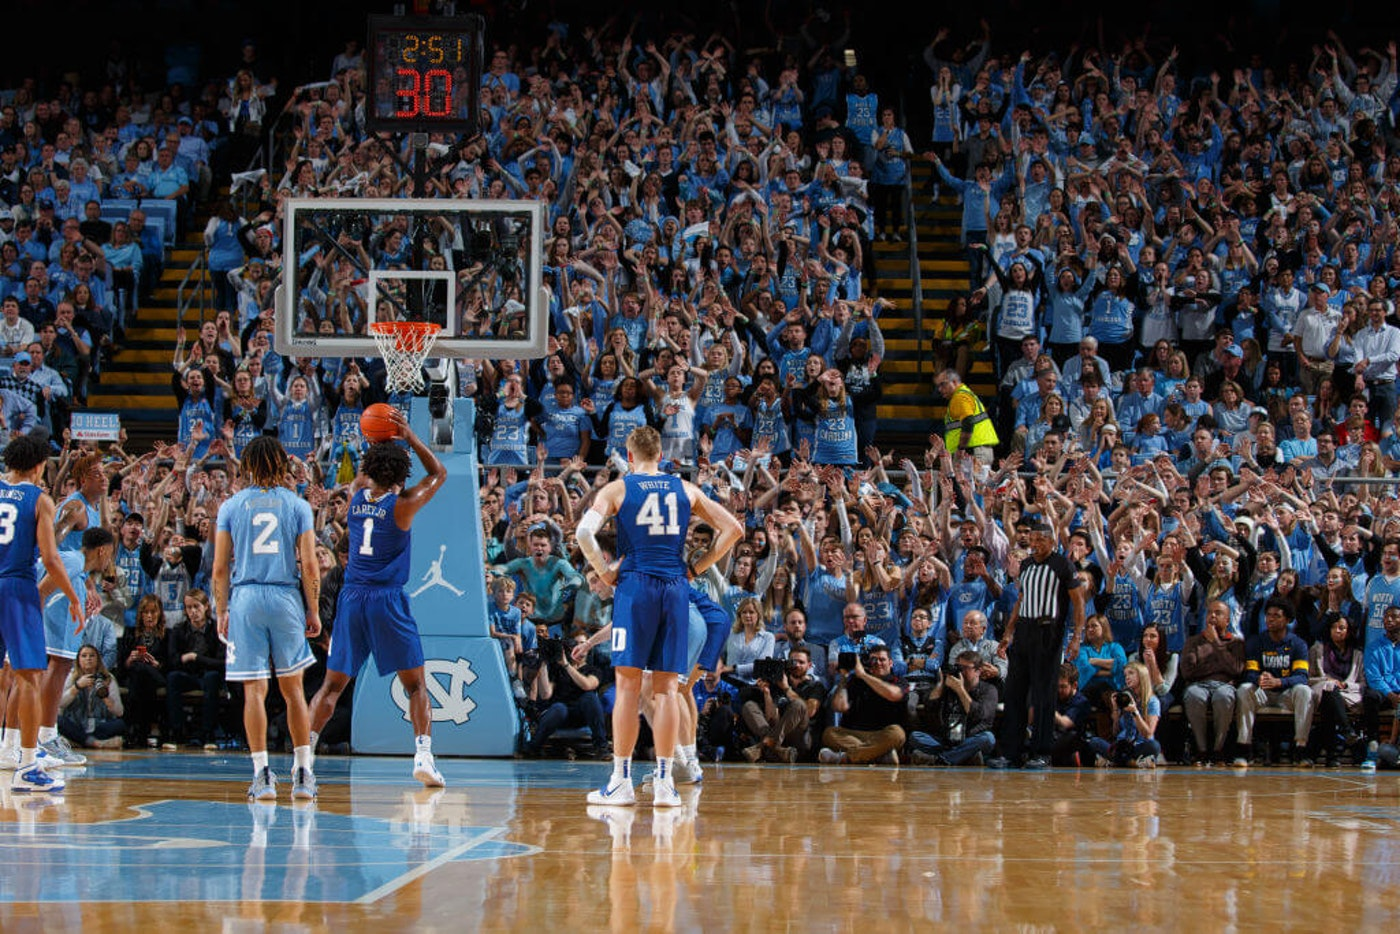 Duke and UNC-Chapel Hill square off in February in Chapel Hill. College basketball is expected to return in the coming days, although the pandemic will blunt the economic impact. (Photo by Peyton Williams/UNC/Getty Images)